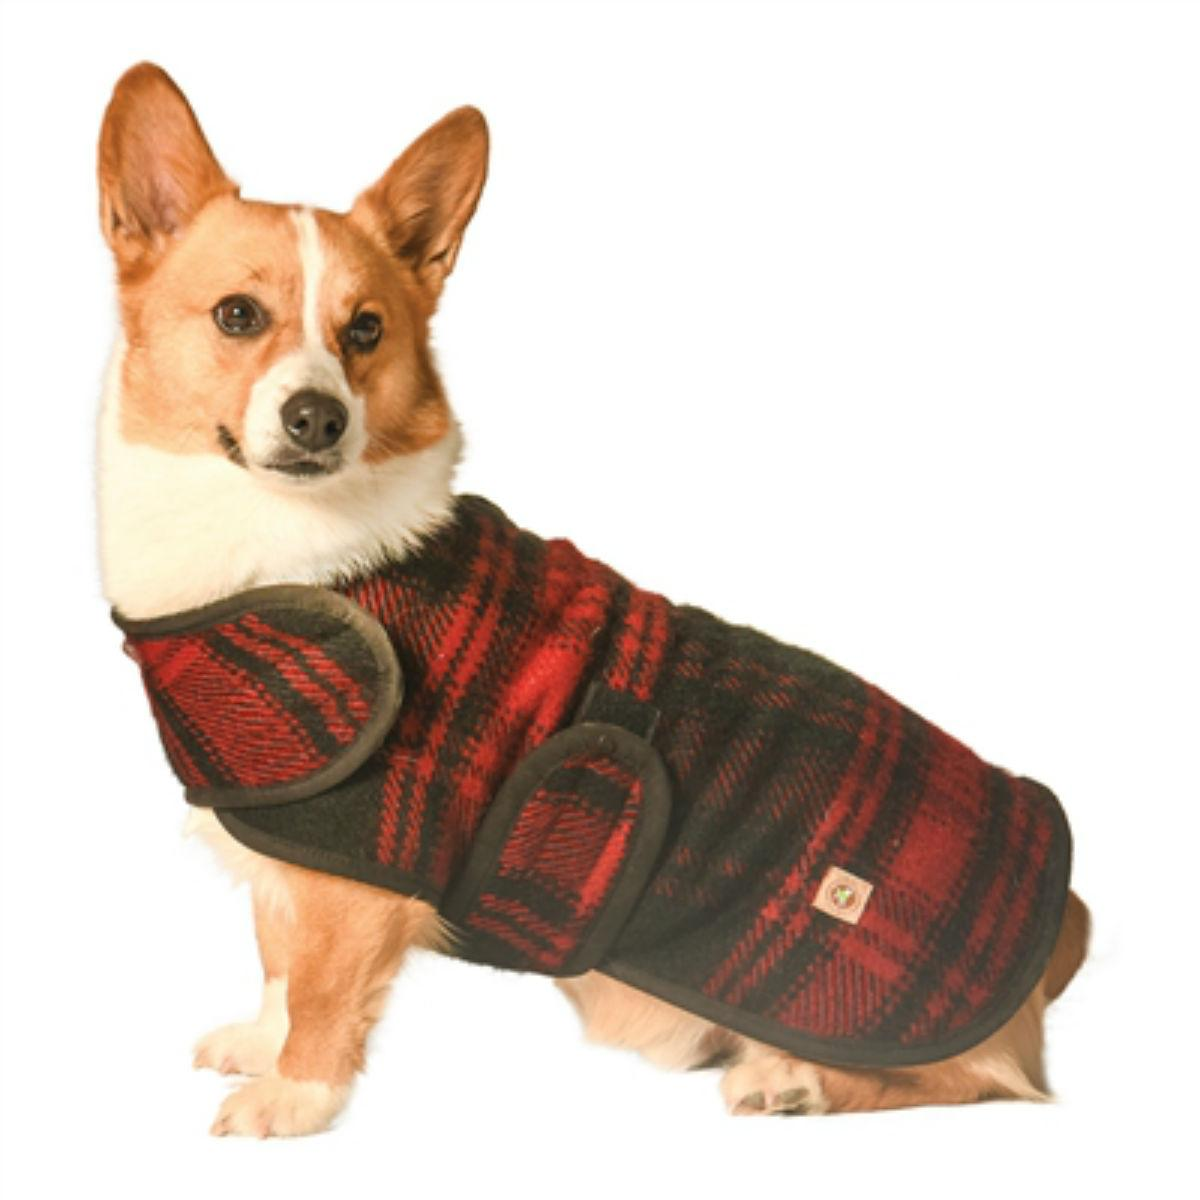 Chilly Dog Plaid Blanket Dog Coat - Red and Black